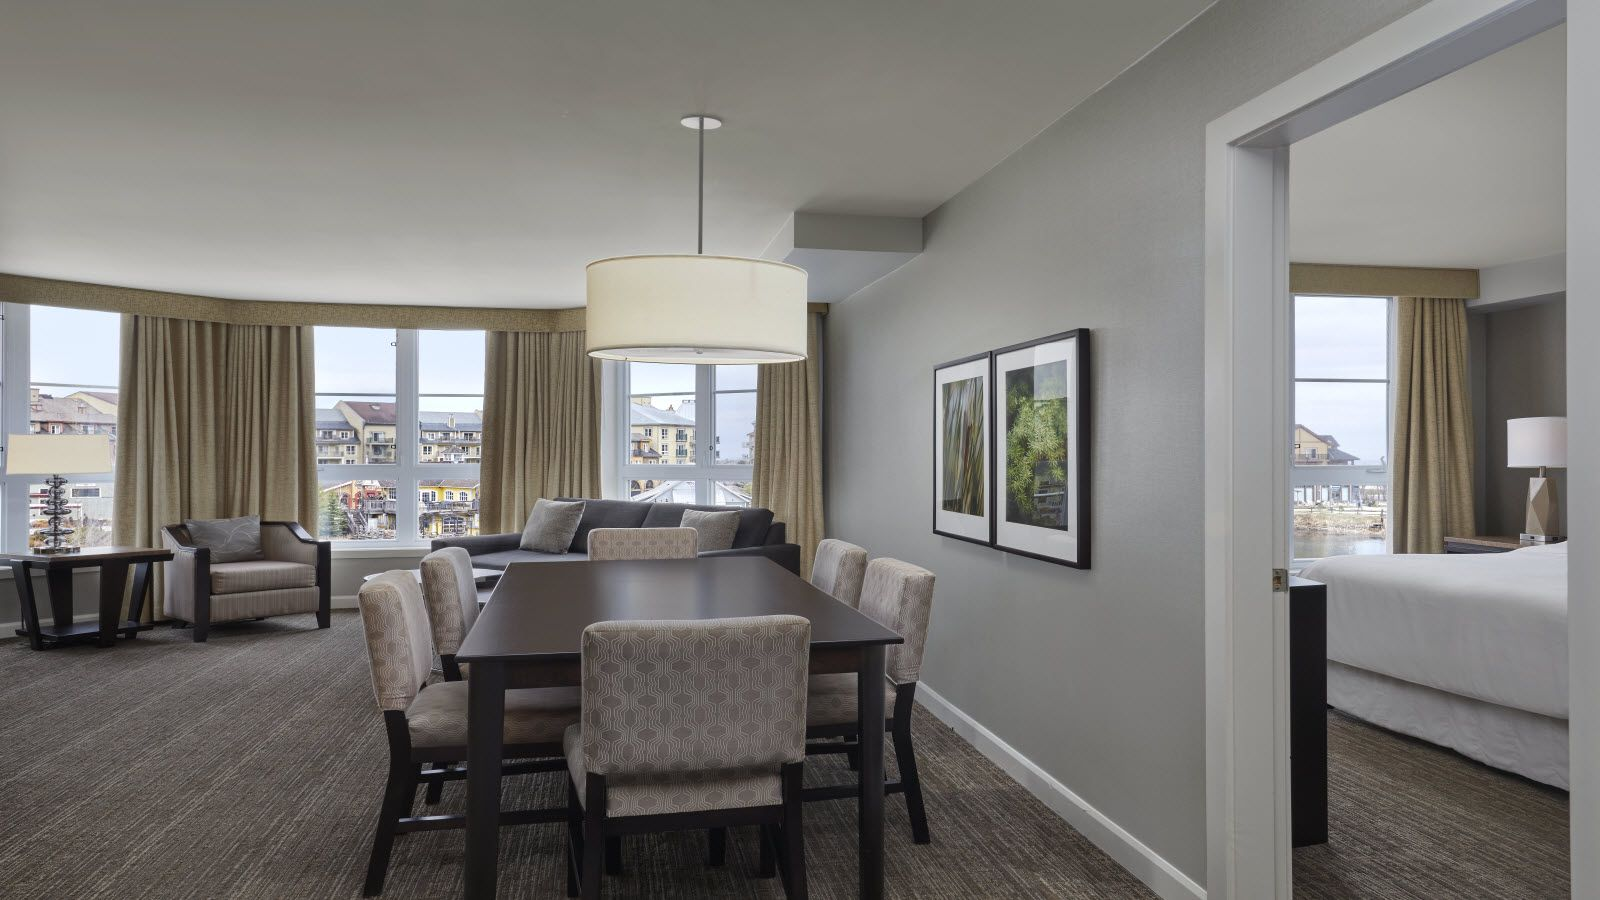 Two Bedroom Suite | The Westin Trillium House, Blue Mountain